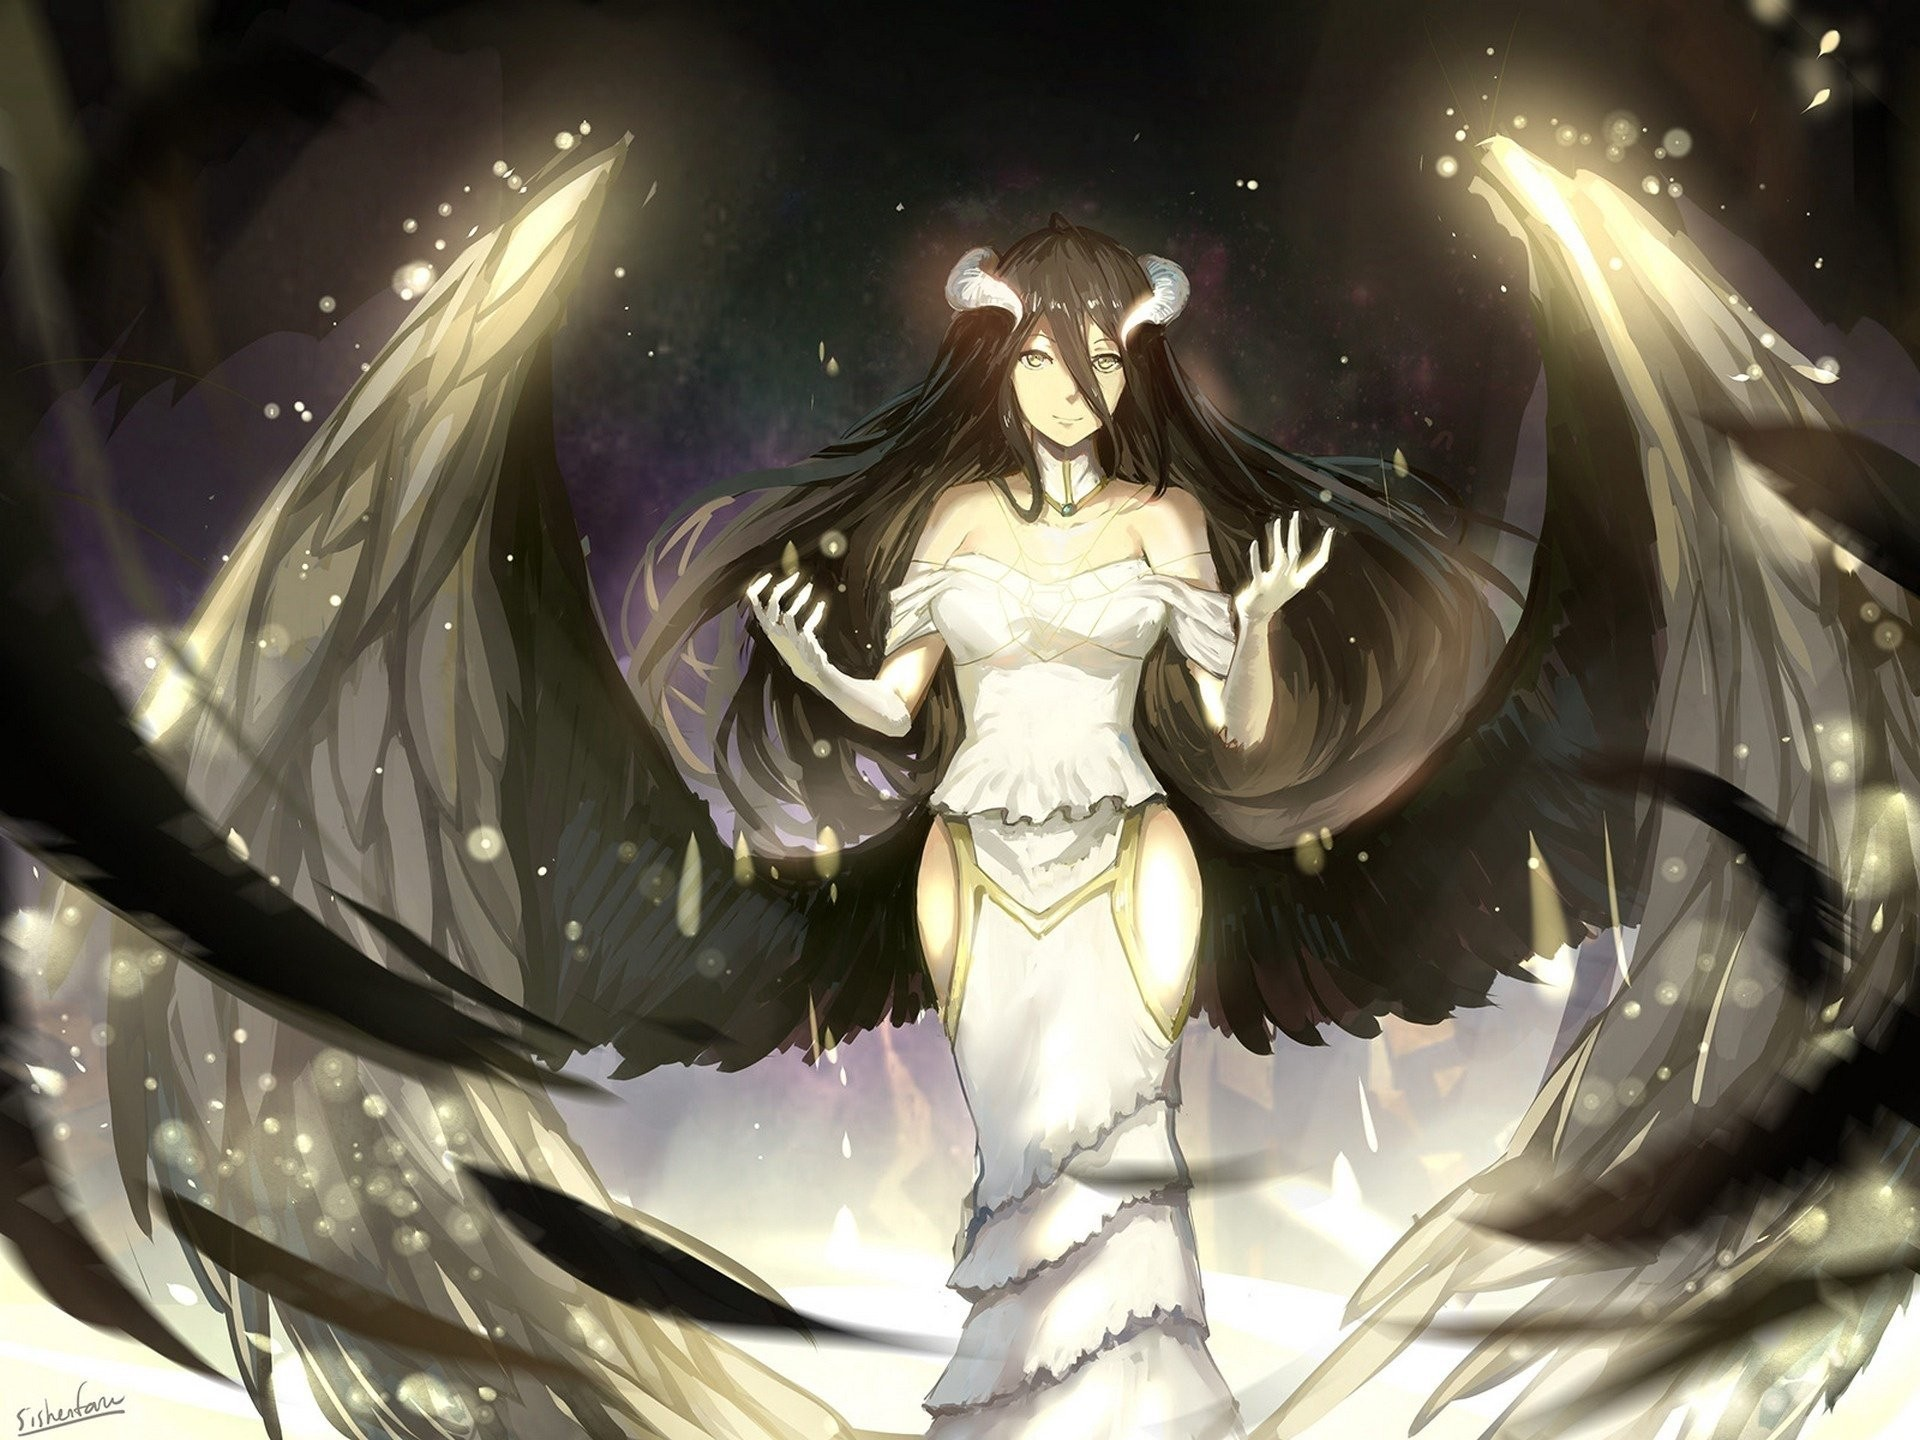 Overlord anime wallpaper download free stunning backgrounds for desktop and mobile devices in - 1920x1080 hentai wallpaper ...